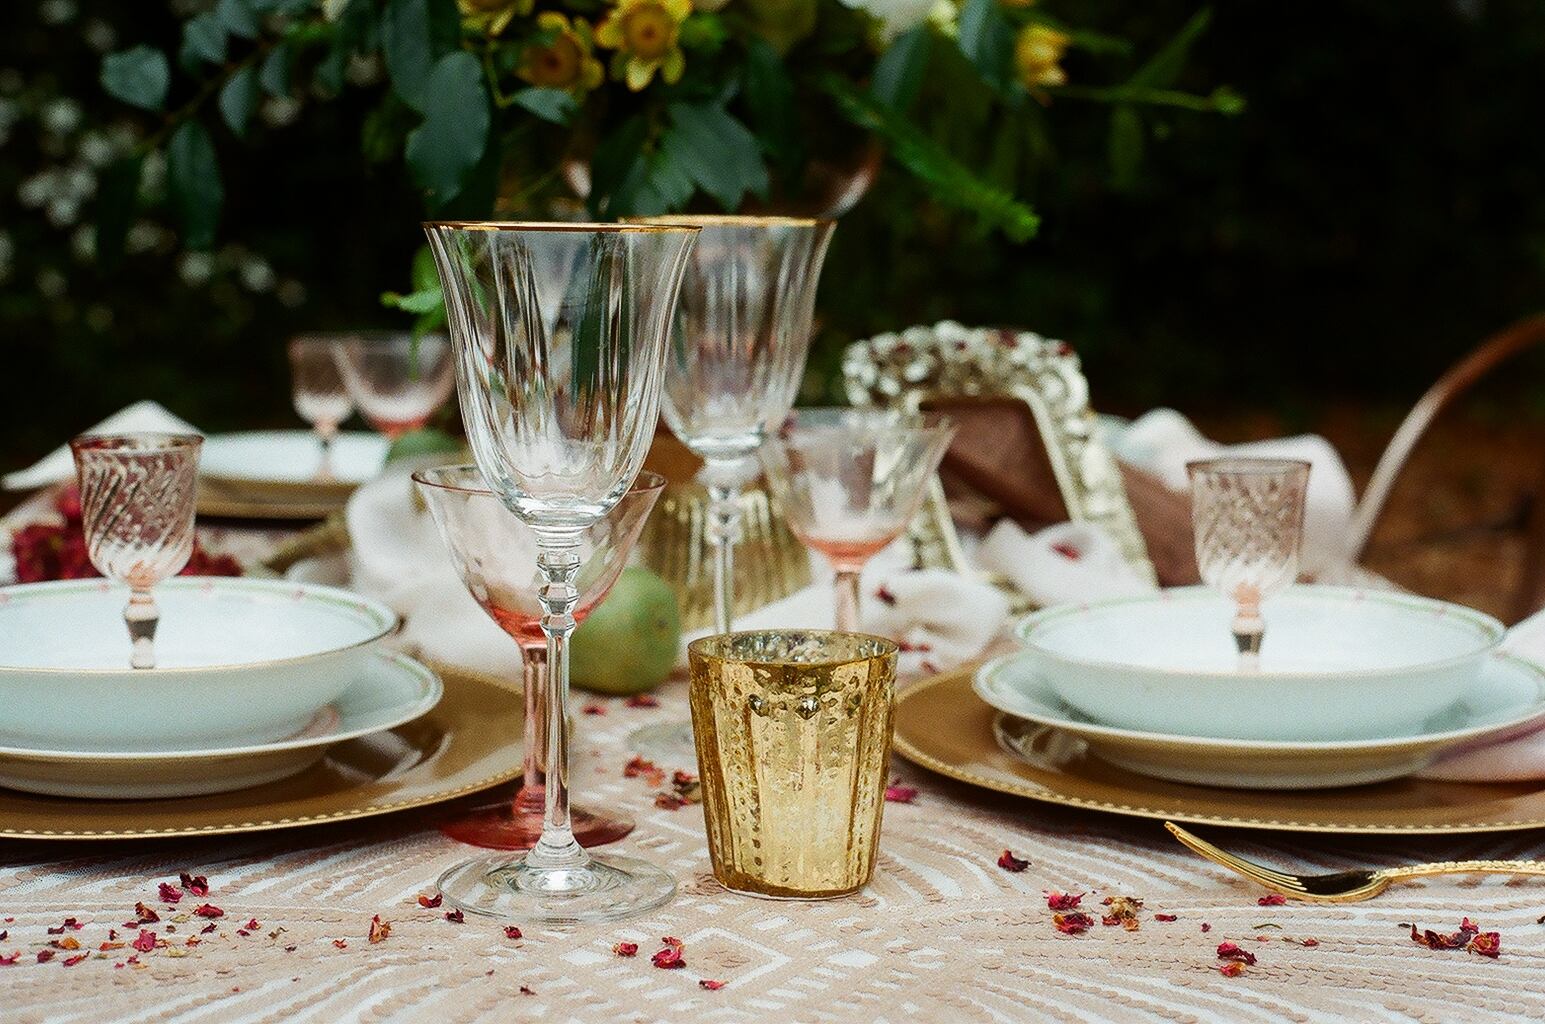 Almost all of the china, glassware, and flatware from this shoot is in my Etsy shop!